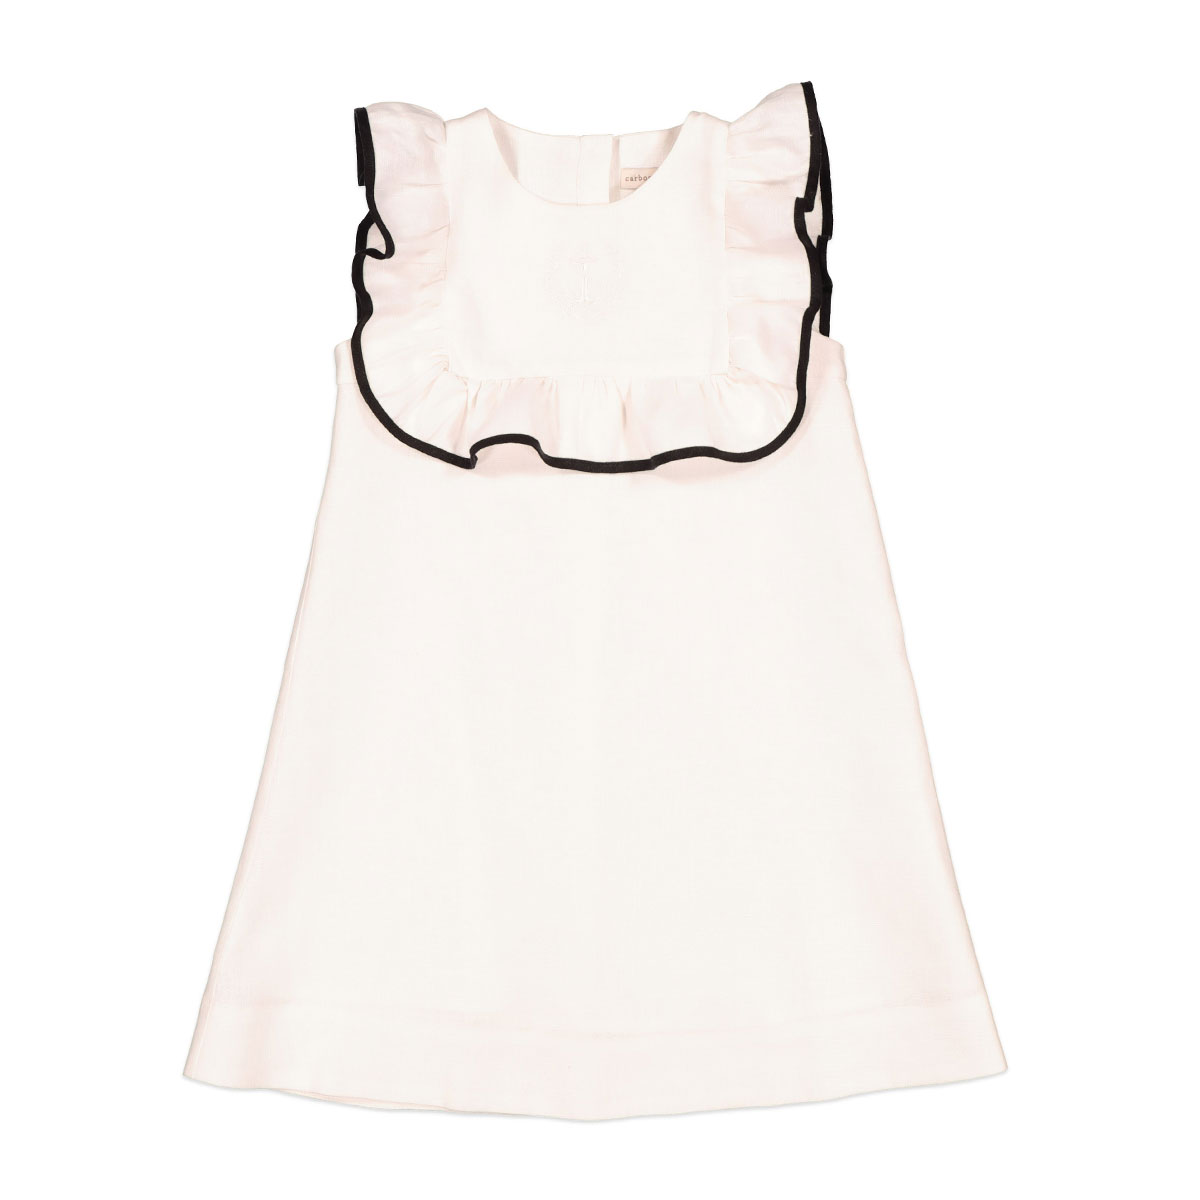 Carbon Soldier Banana Kick Sleeveless Dress in Ivory and Black